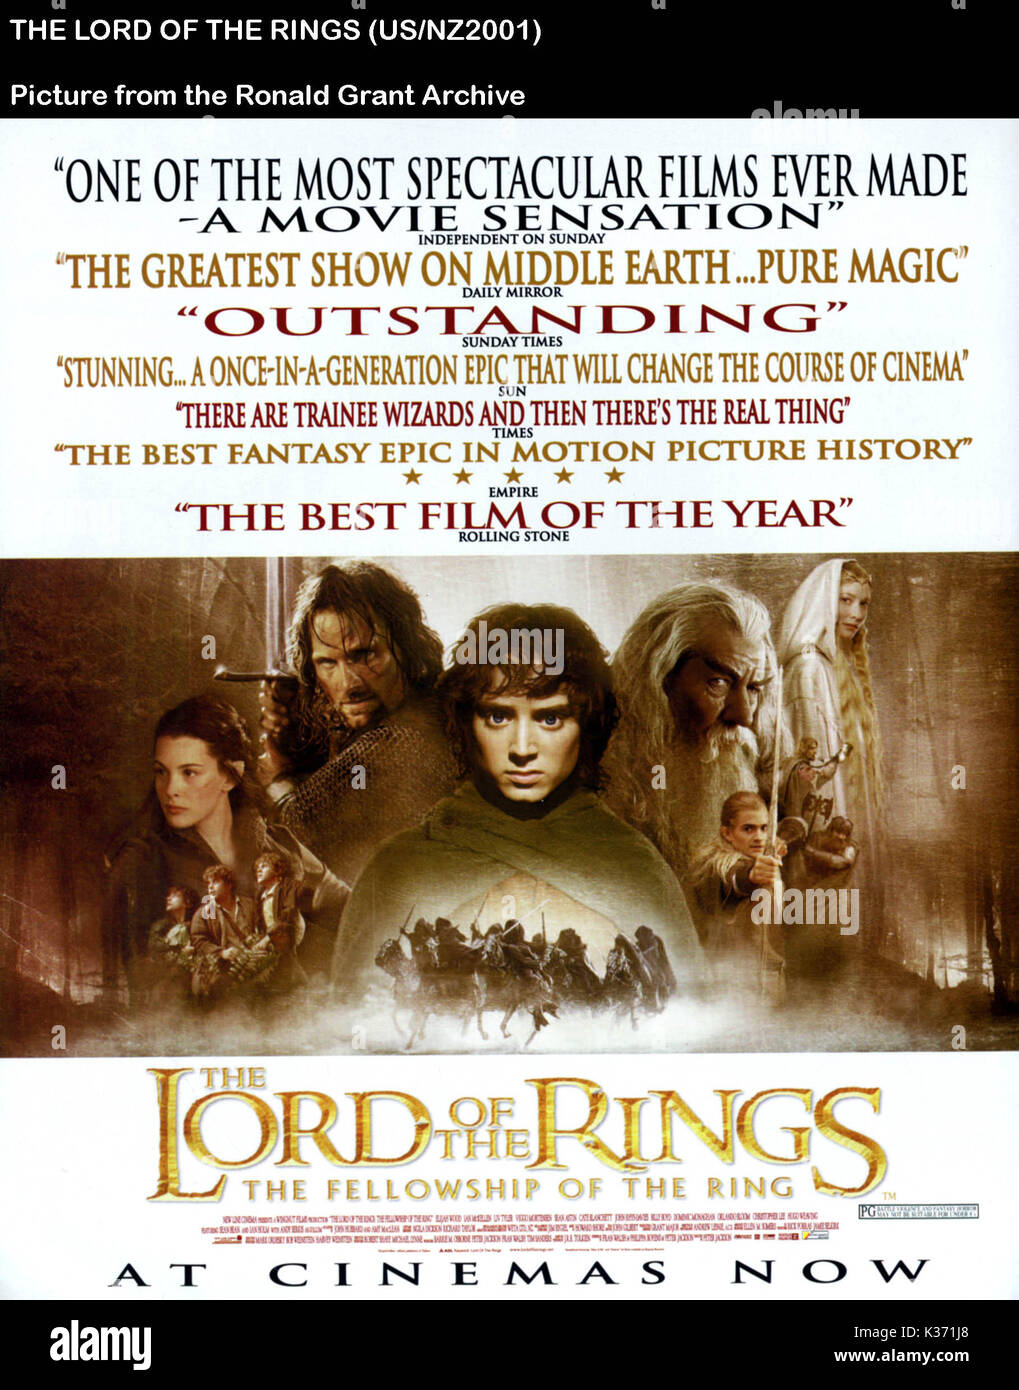 Lord of the rings dating site